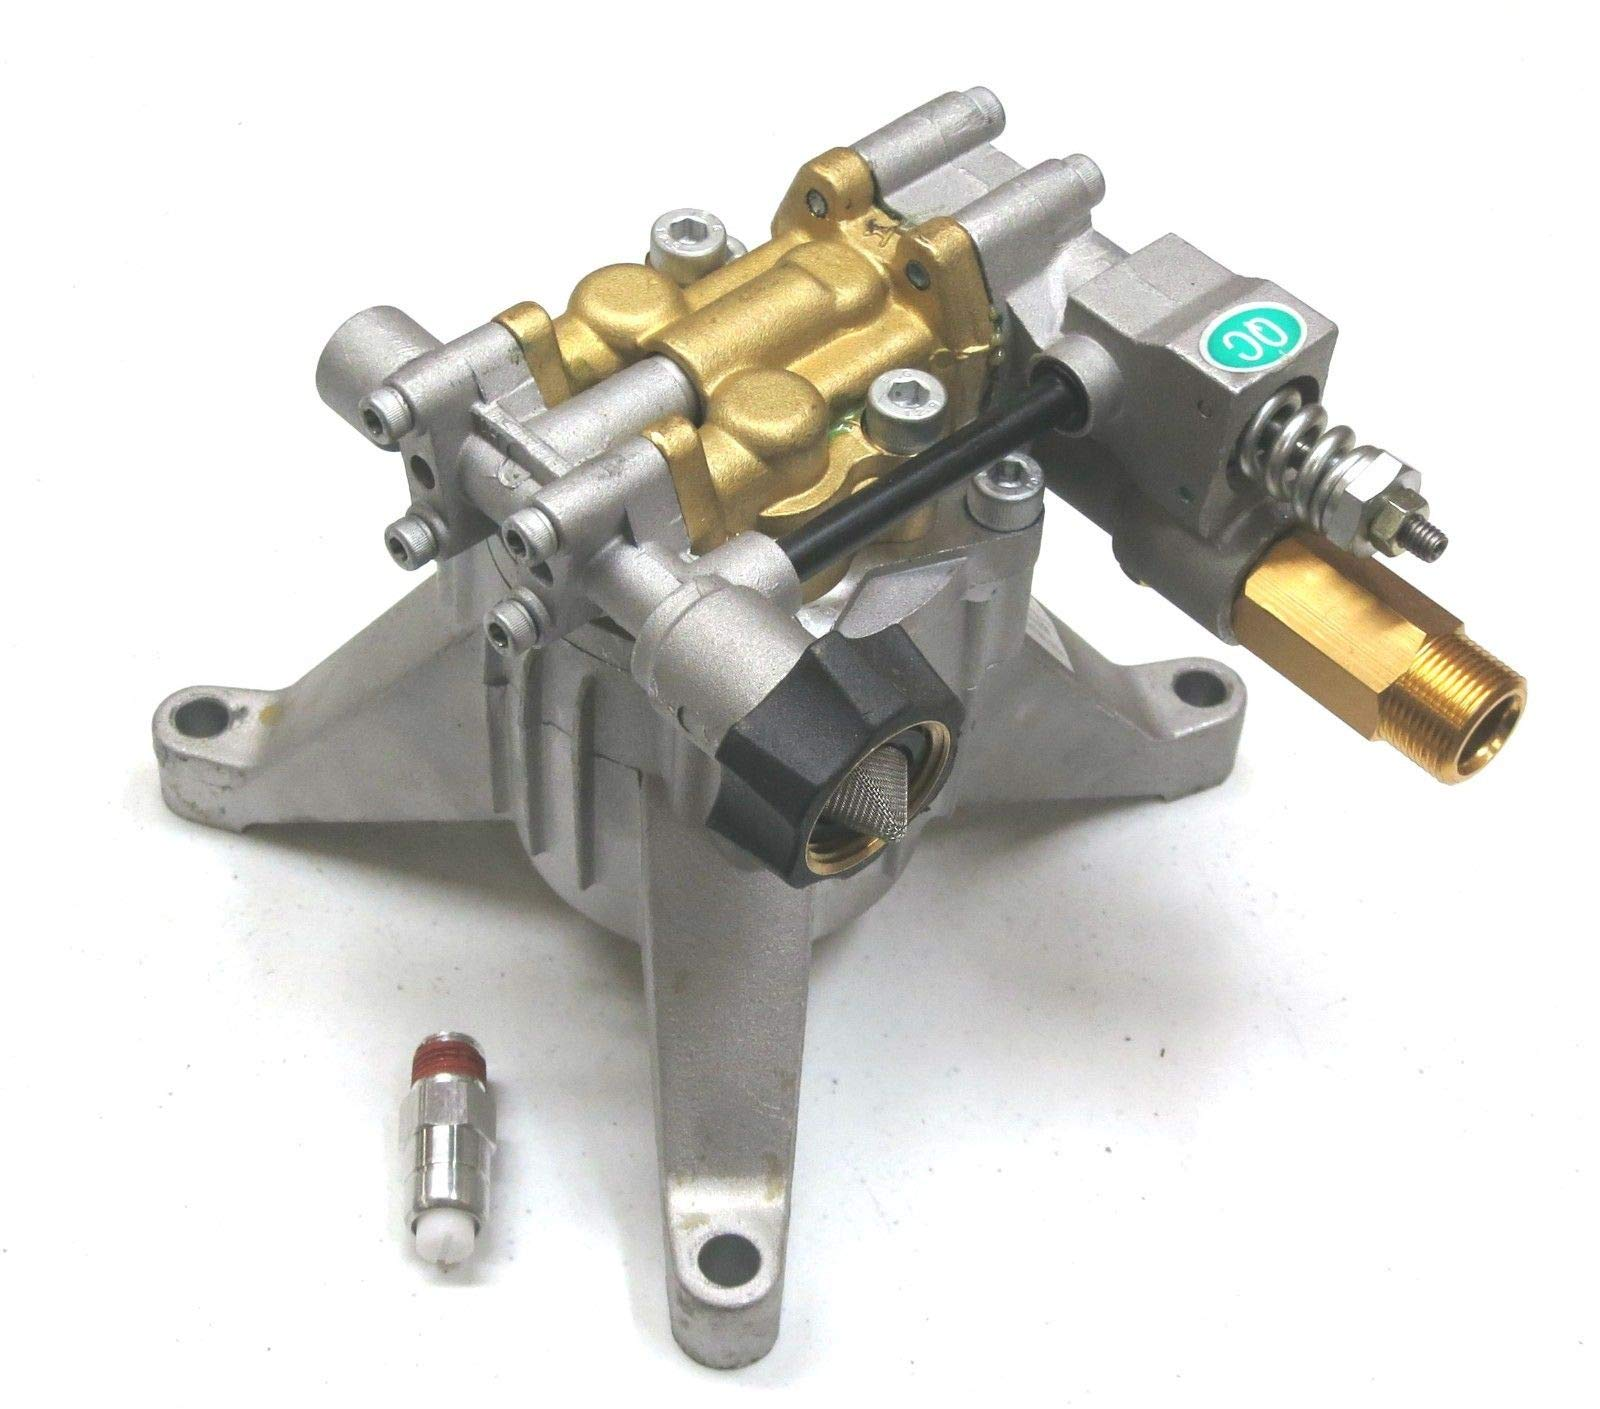 3100 PSI Upgraded POWER PRESSURE WASHER WATER PUMP Simpson MSV3024 by The ROP Shop